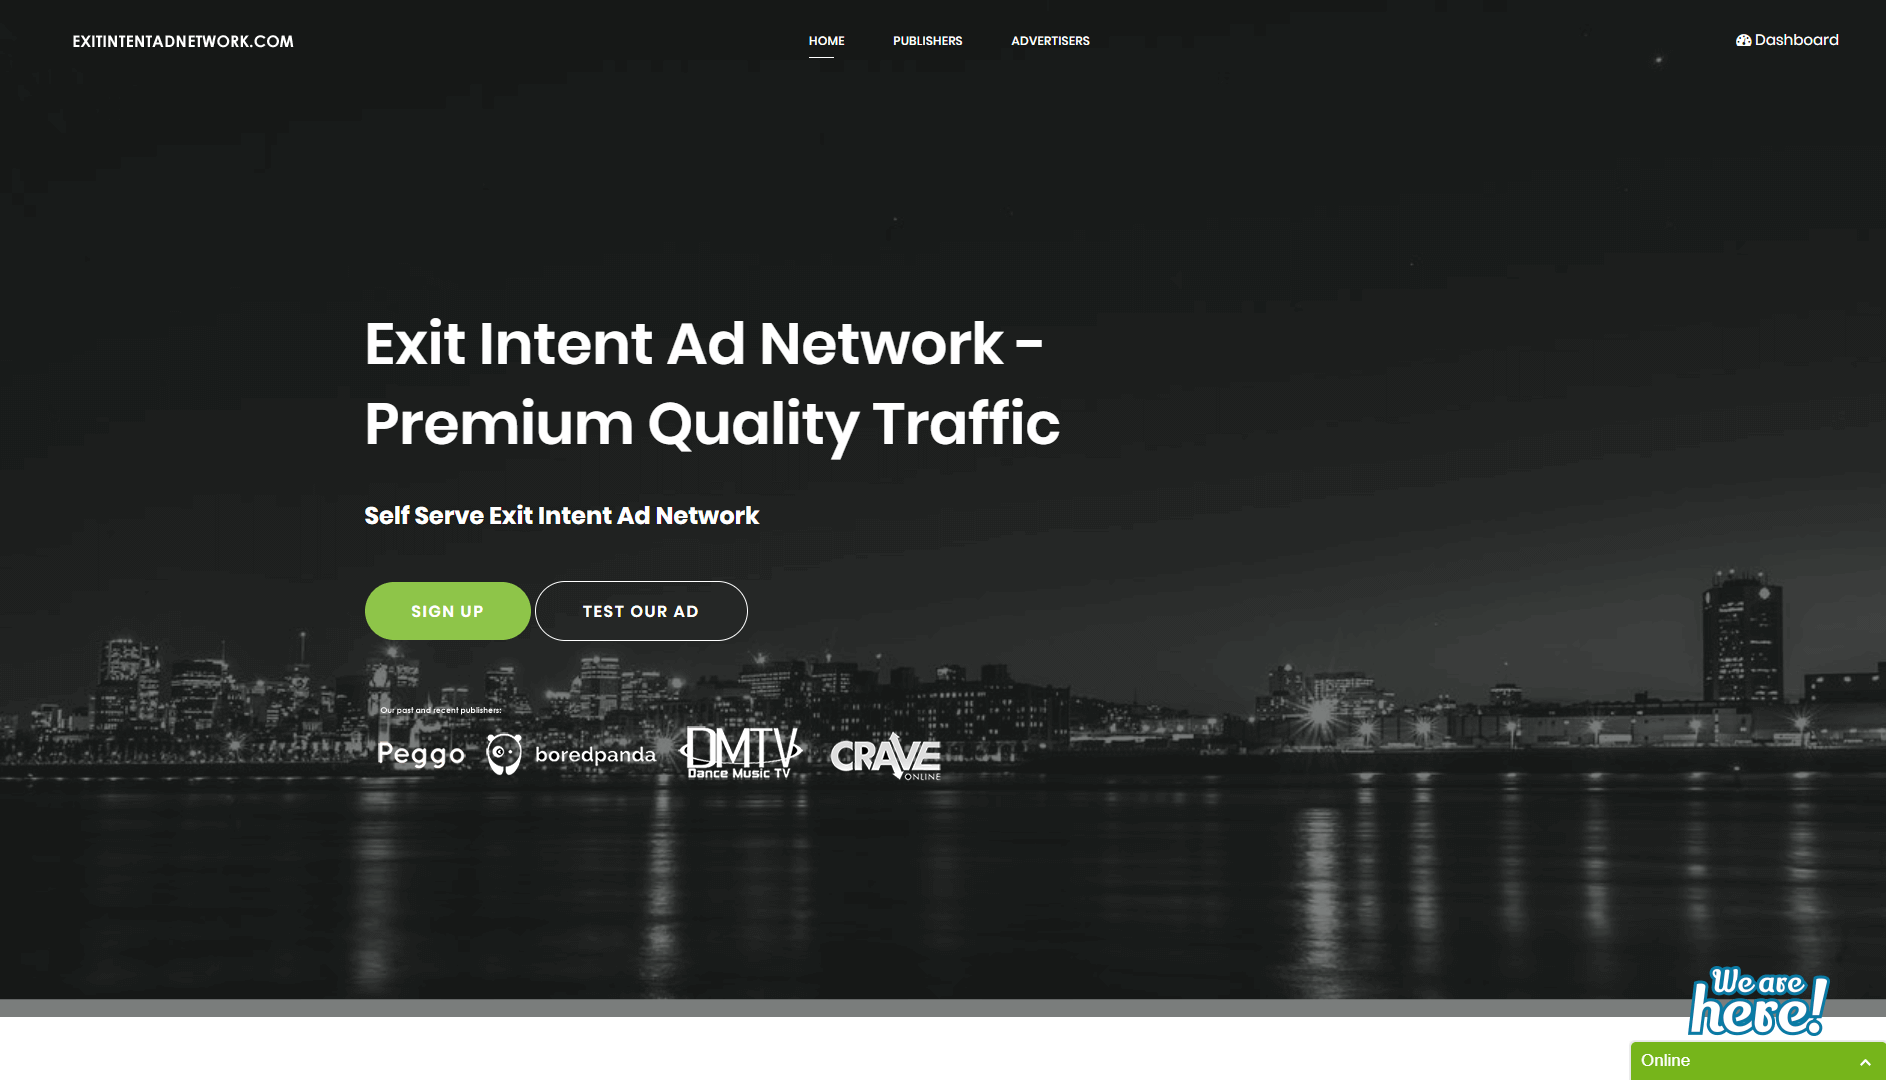 ExitIntentdNetwork Home Page